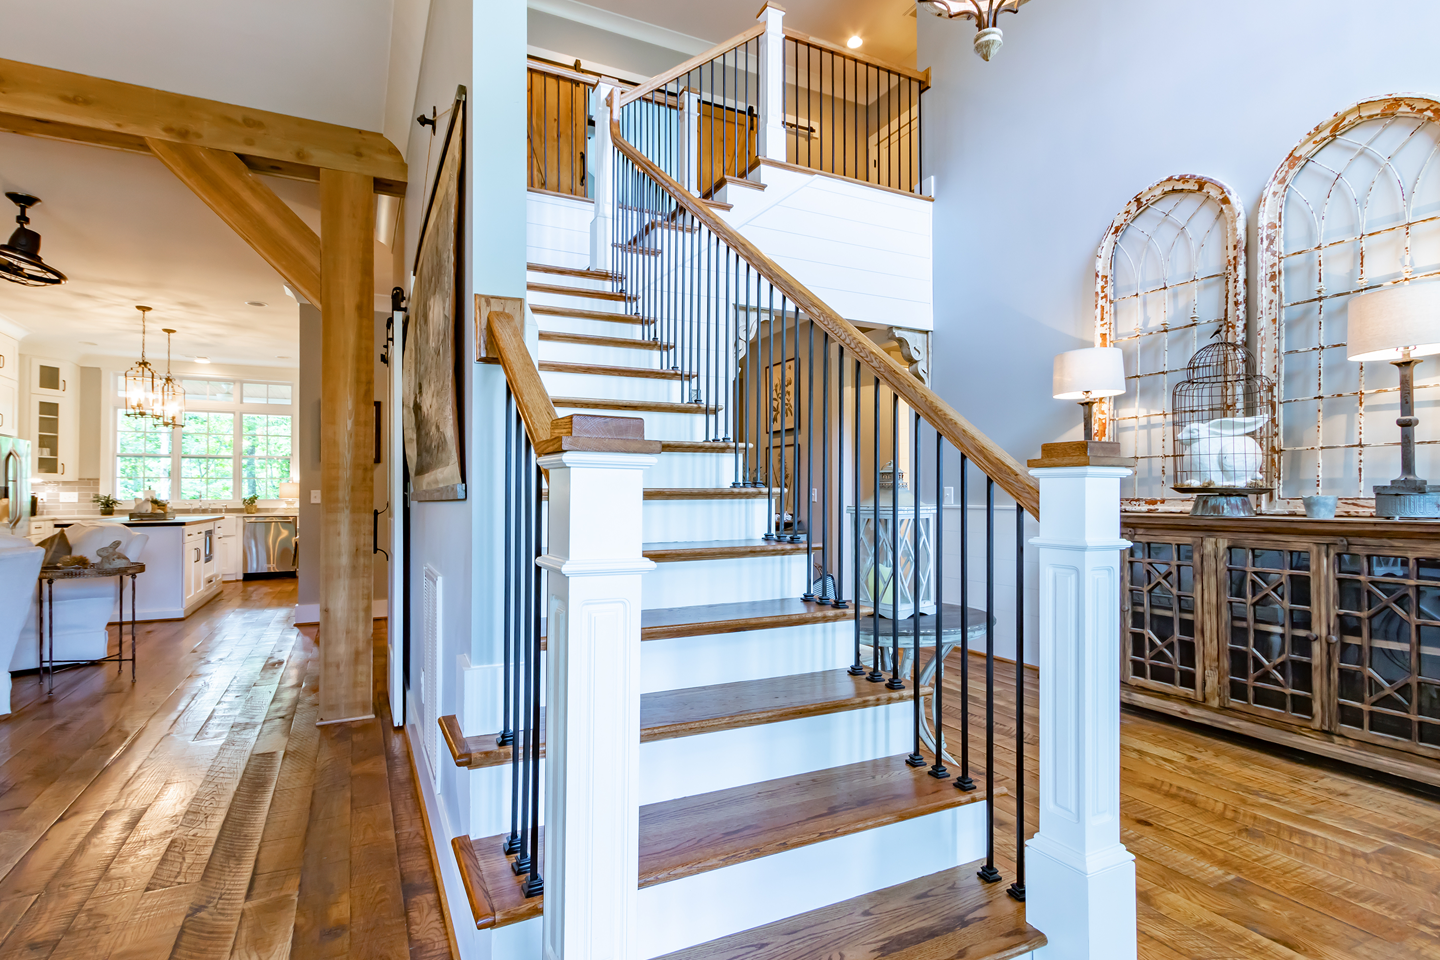 Wooden Staircase Design in Rustic Home